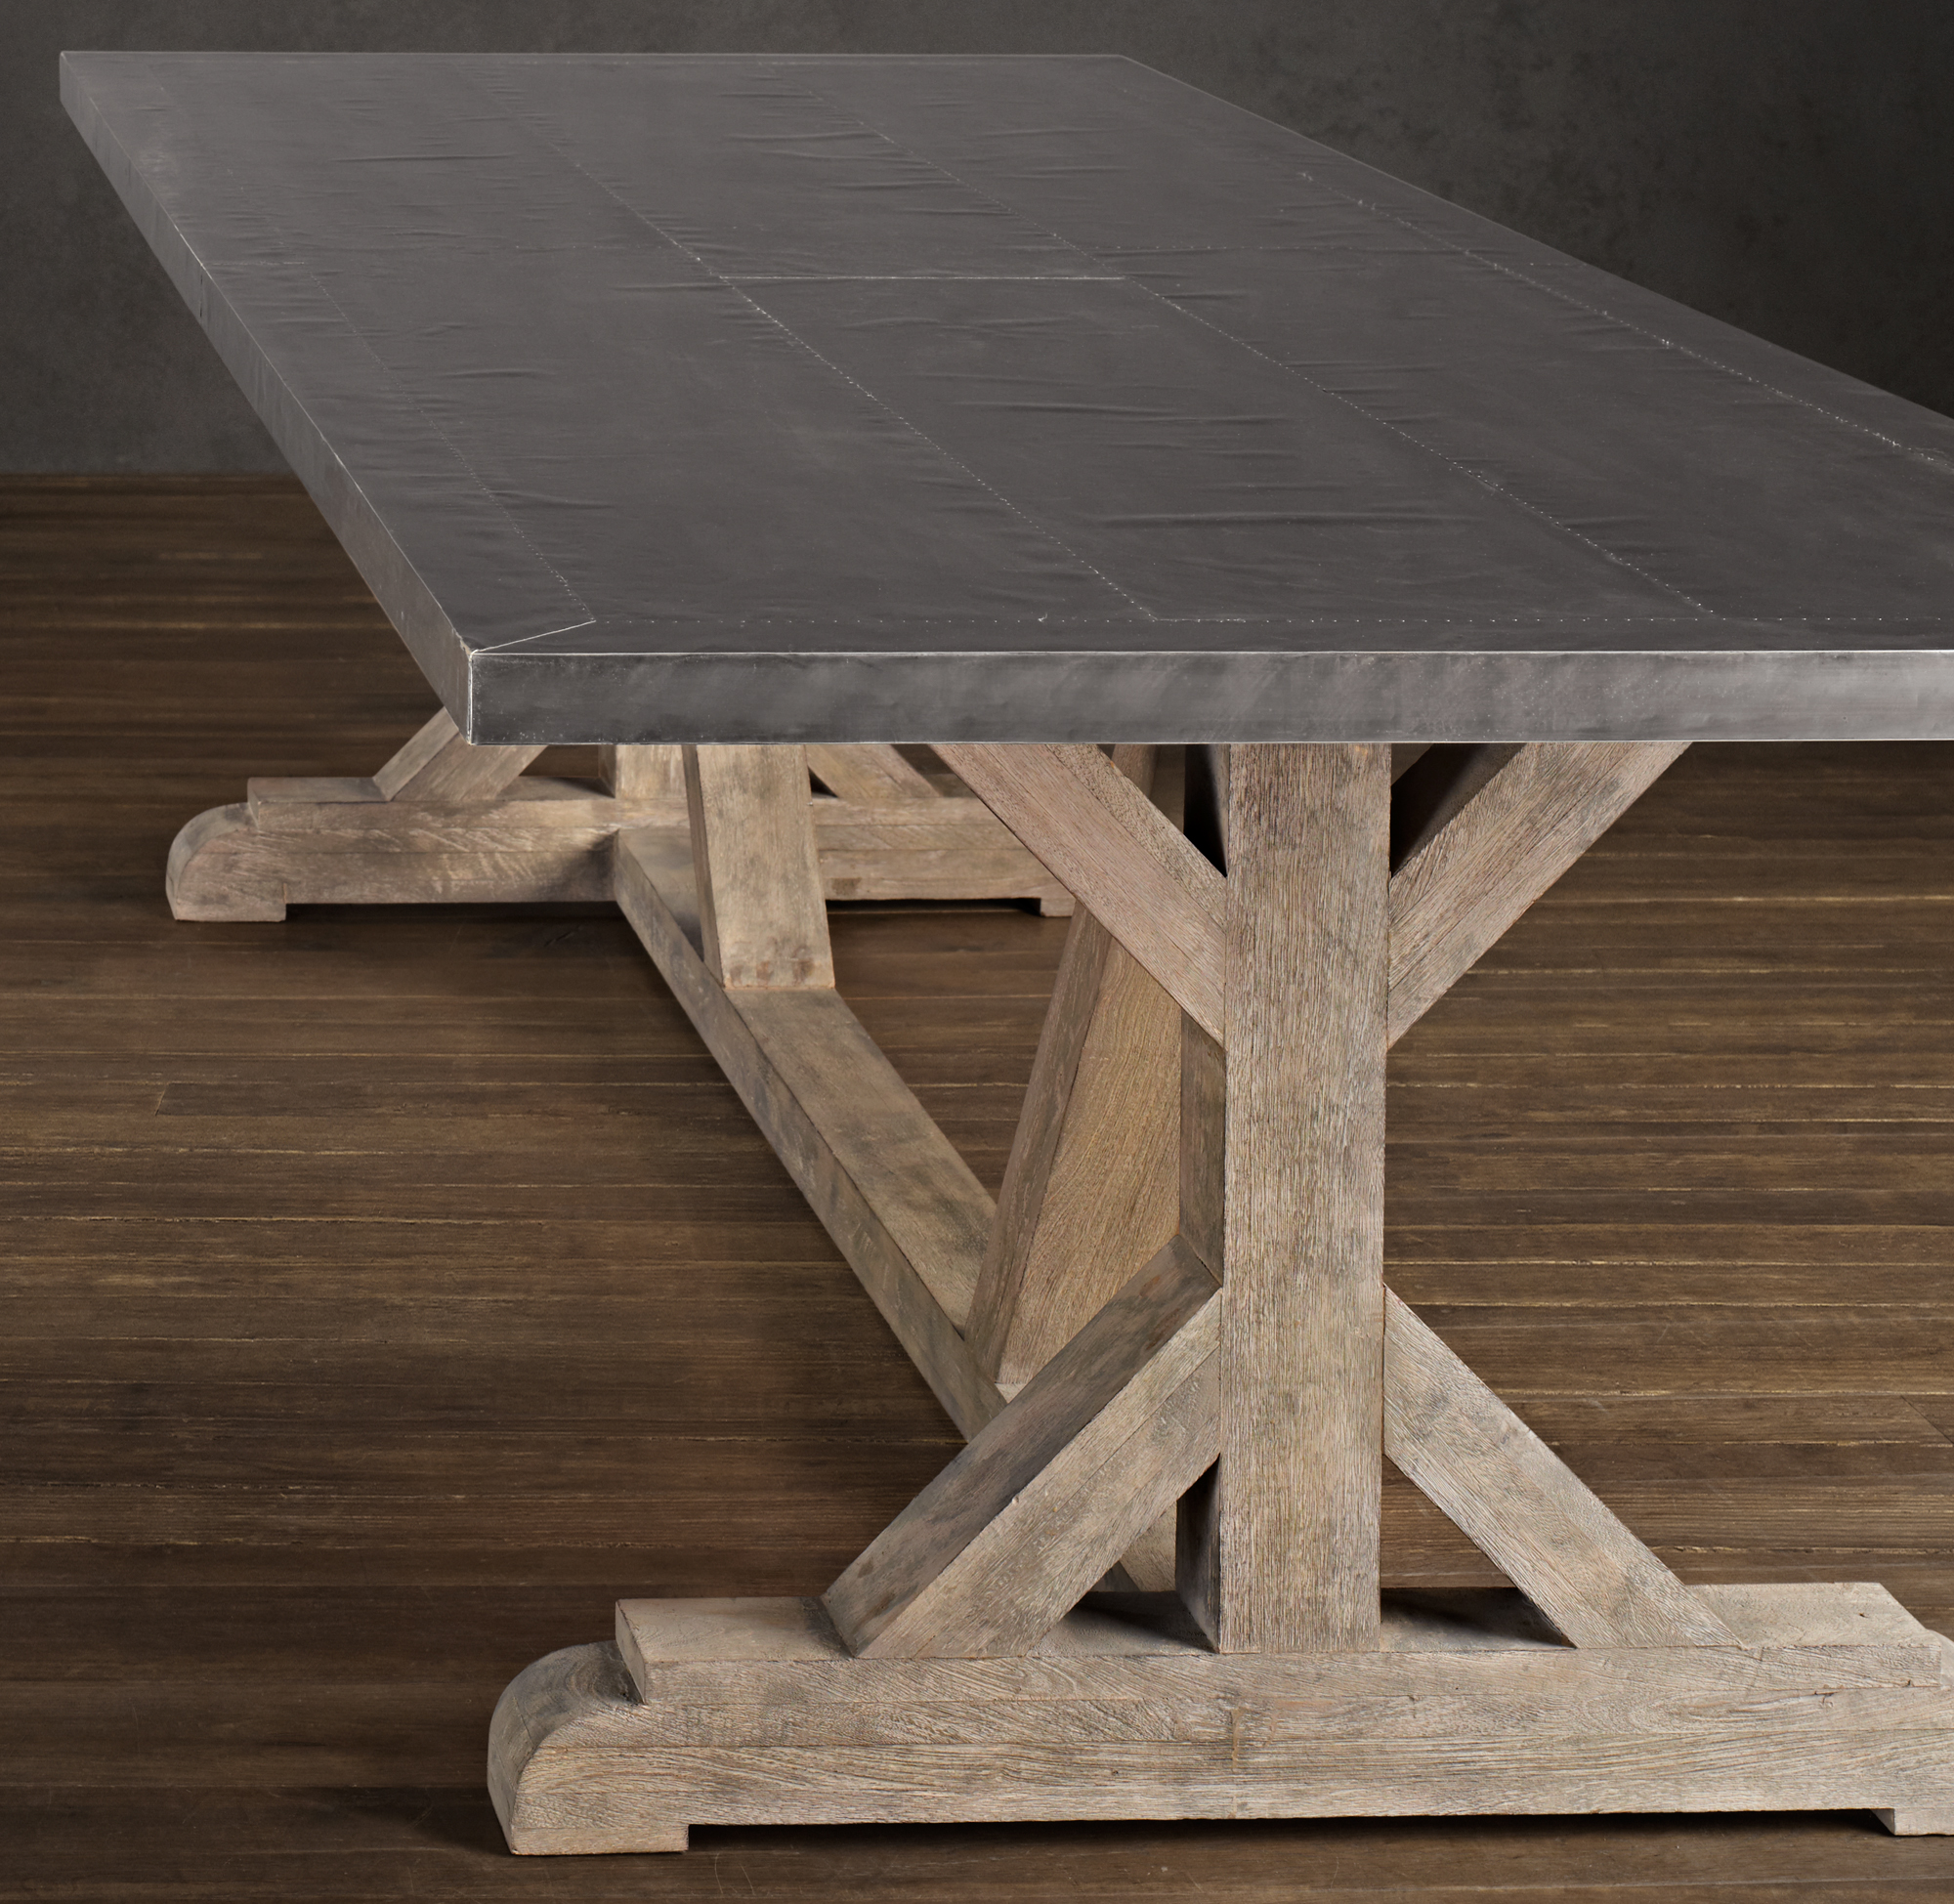 Restoration Hardware Recalls Metal Top Dining Tables Due to Risk